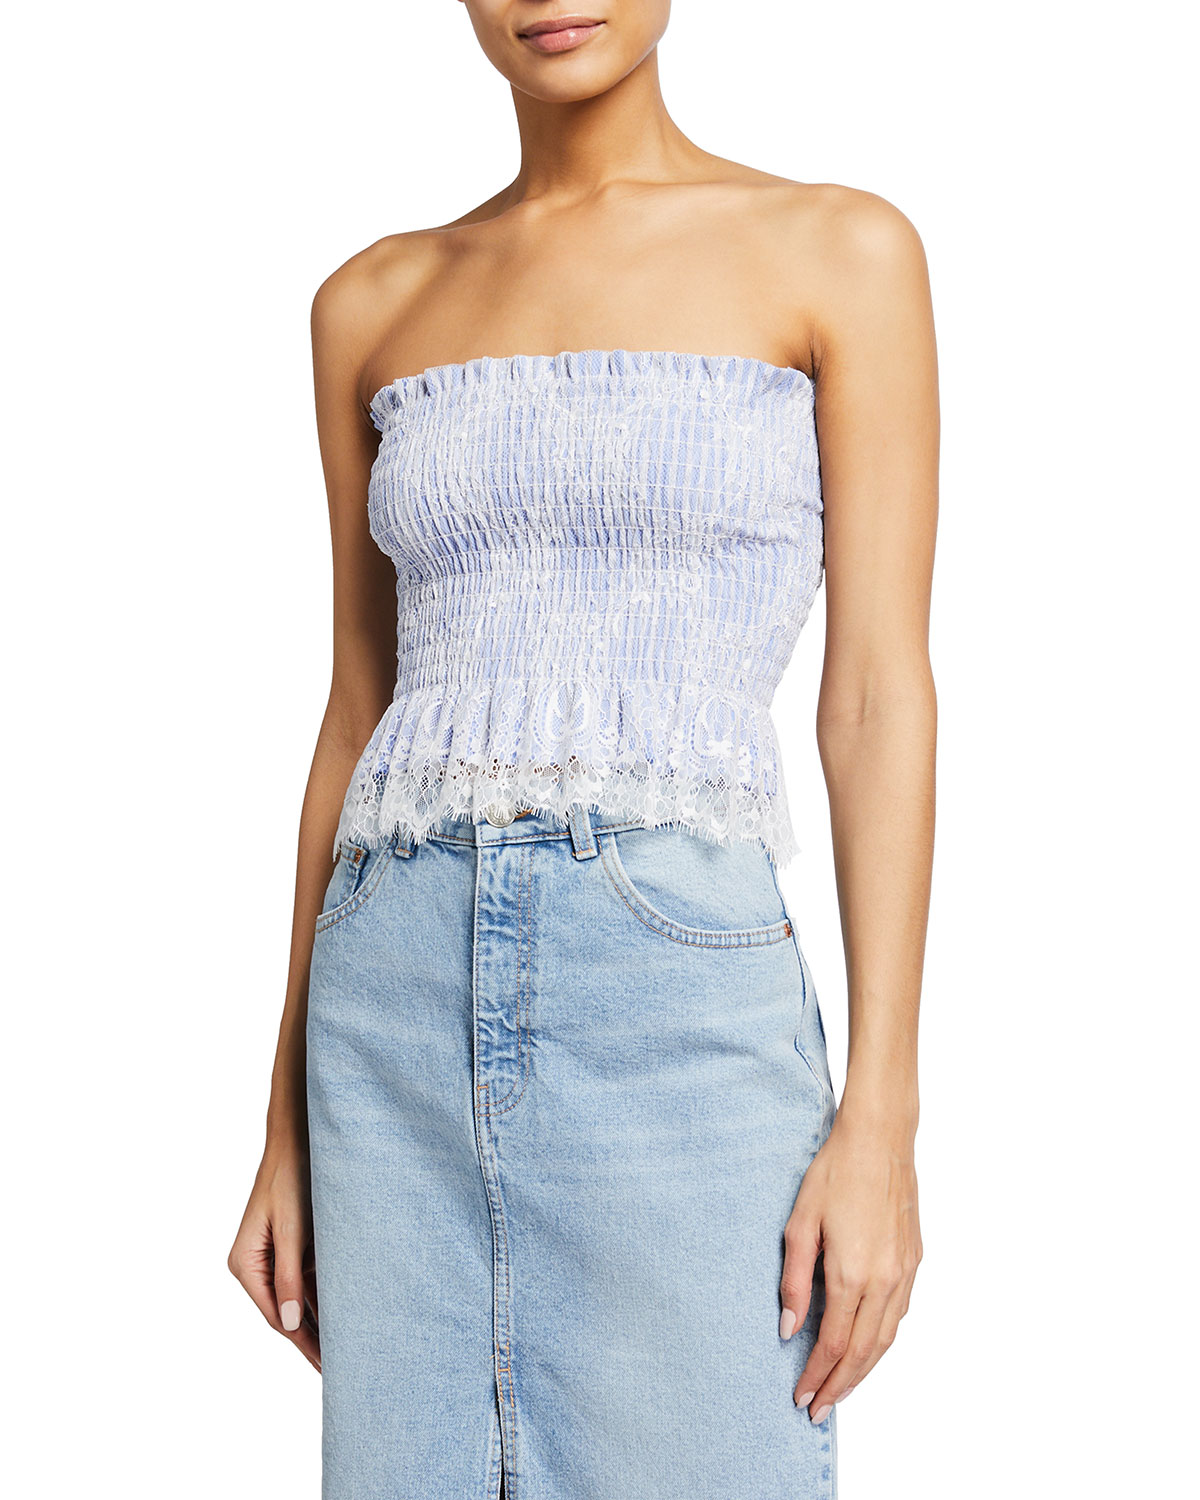 Strapless Bustier French Lace Top